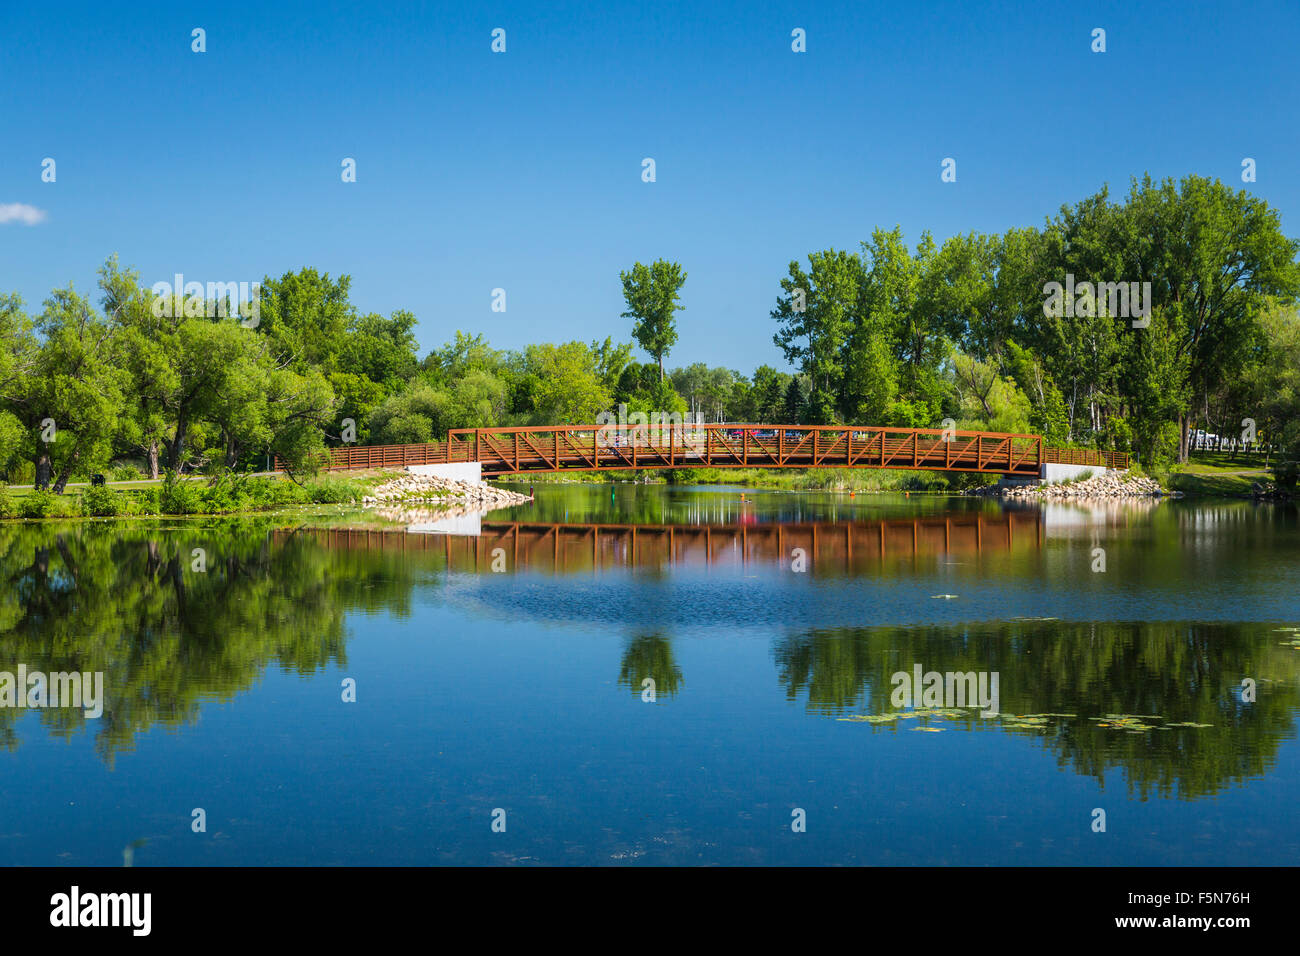 A city park and lake in Park Rapids, Minnesota, USA. - Stock Image